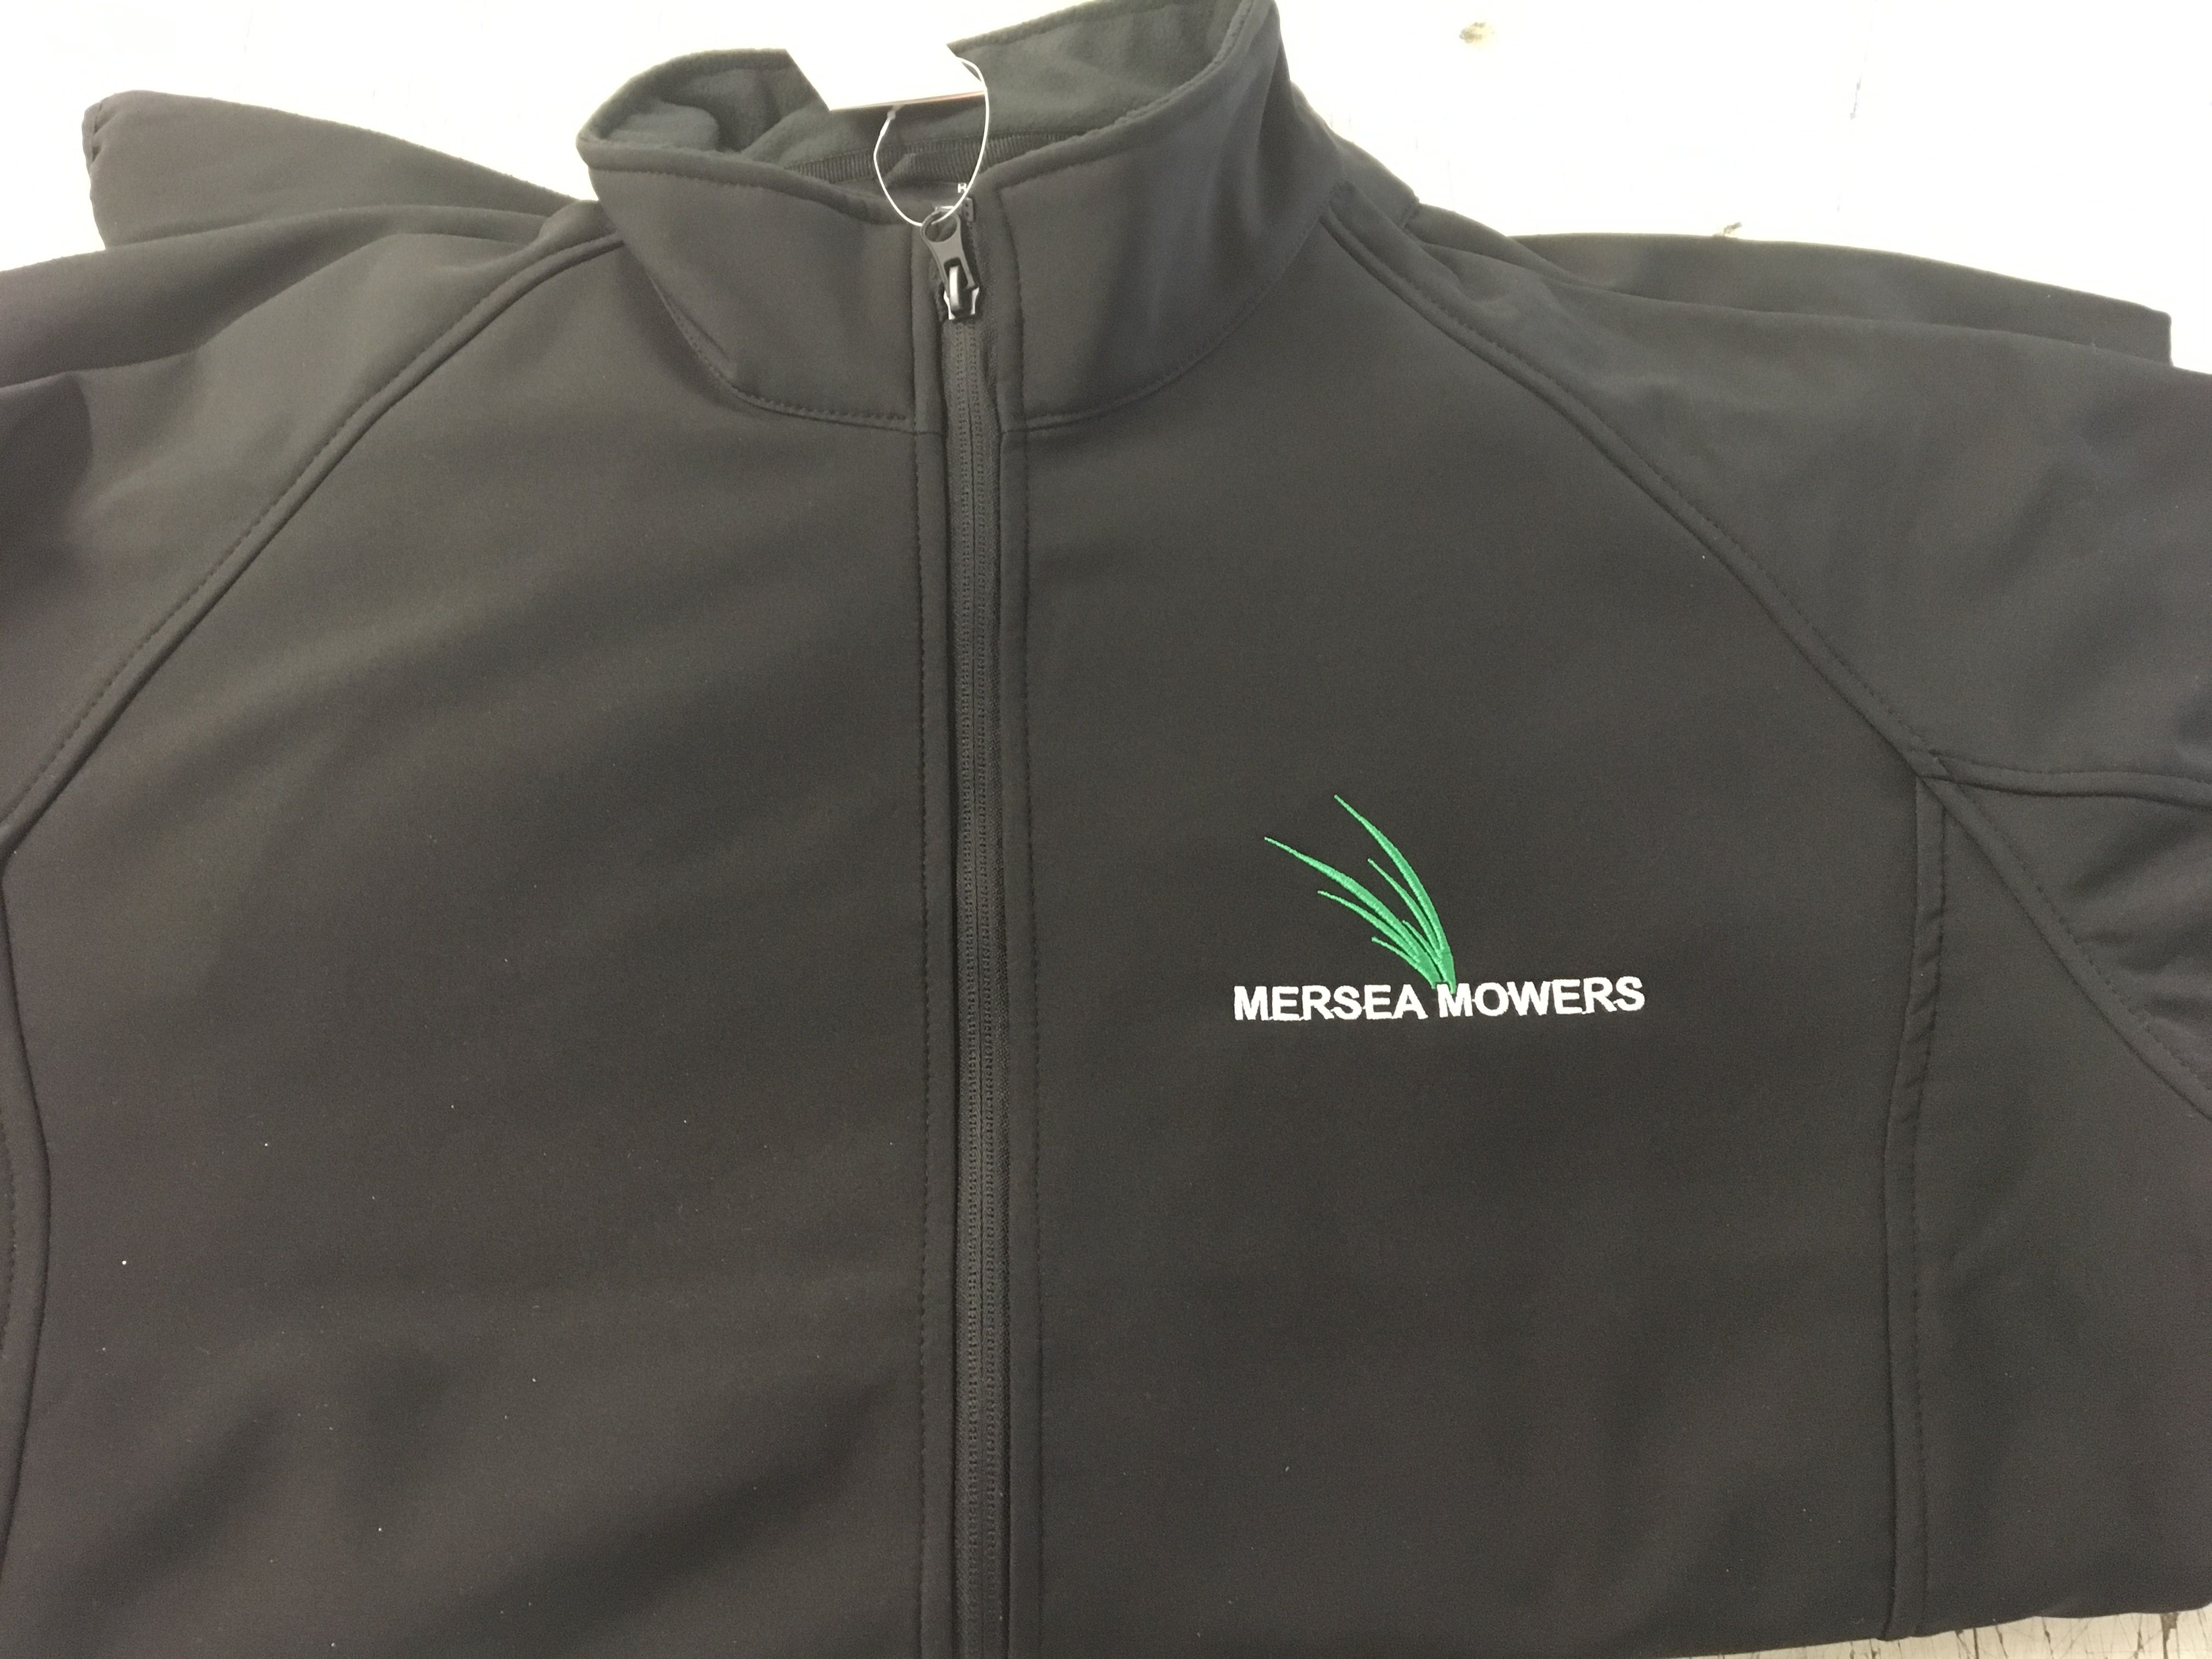 Mersea Mowers embroidered soft shell jackets